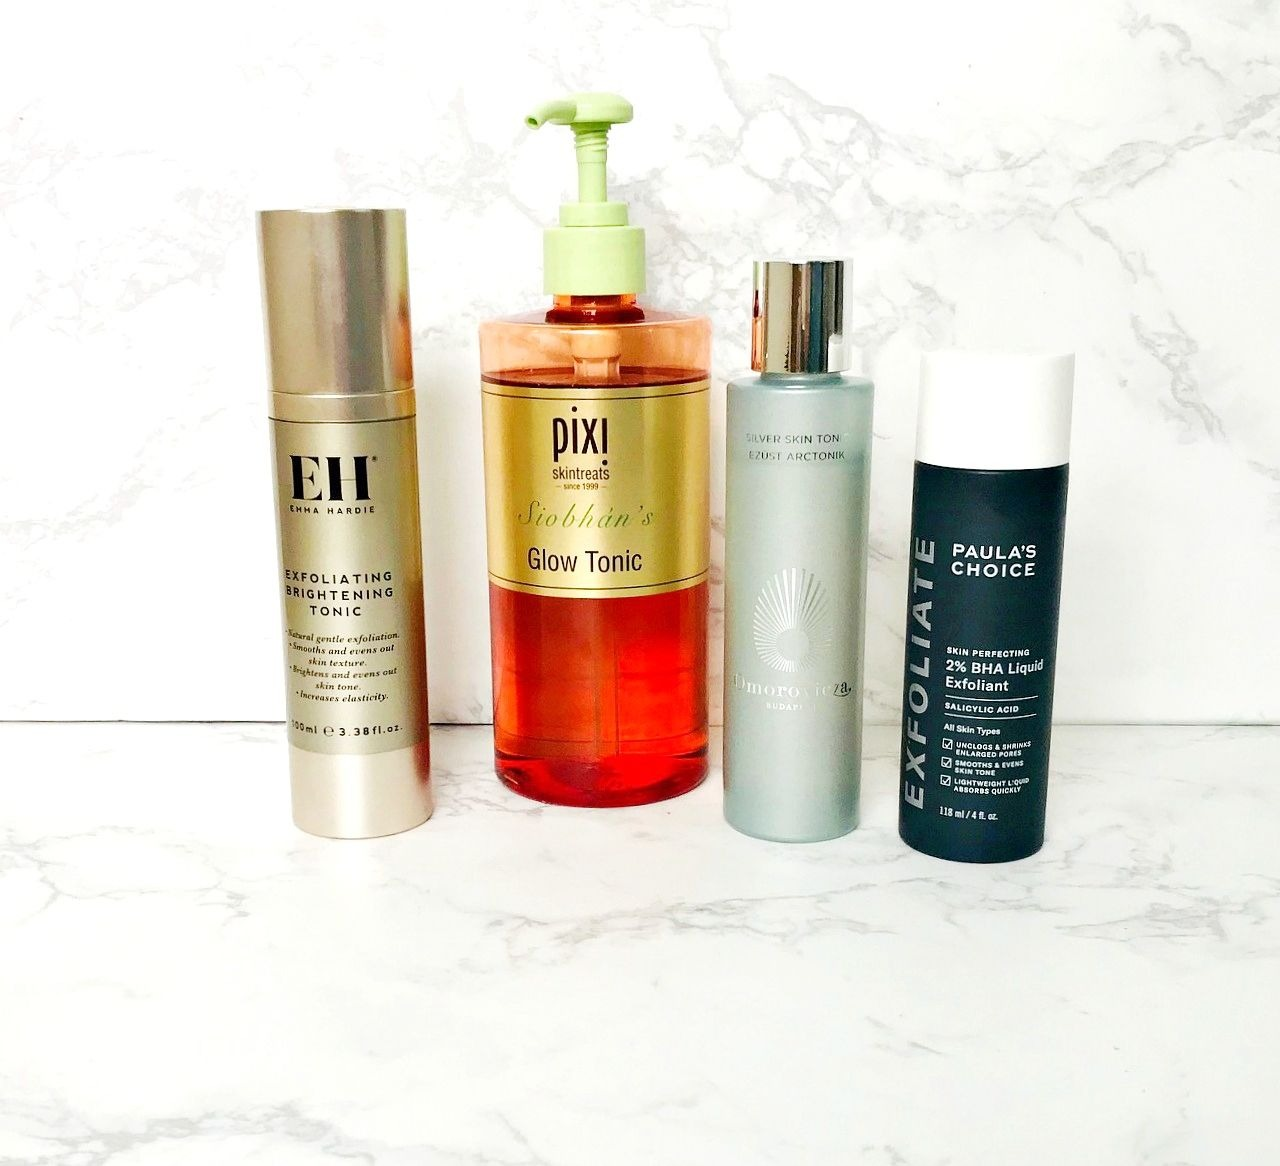 Exfoliating toner, acid toner, Omorovicza Silver Saviour Tonic, Paula's Choice Skin Perfecting 2% BHA Liquid Exfoliant, Emma Hardie Exfoliating Brightening Tonic Review, Pixi Glow Tonic,